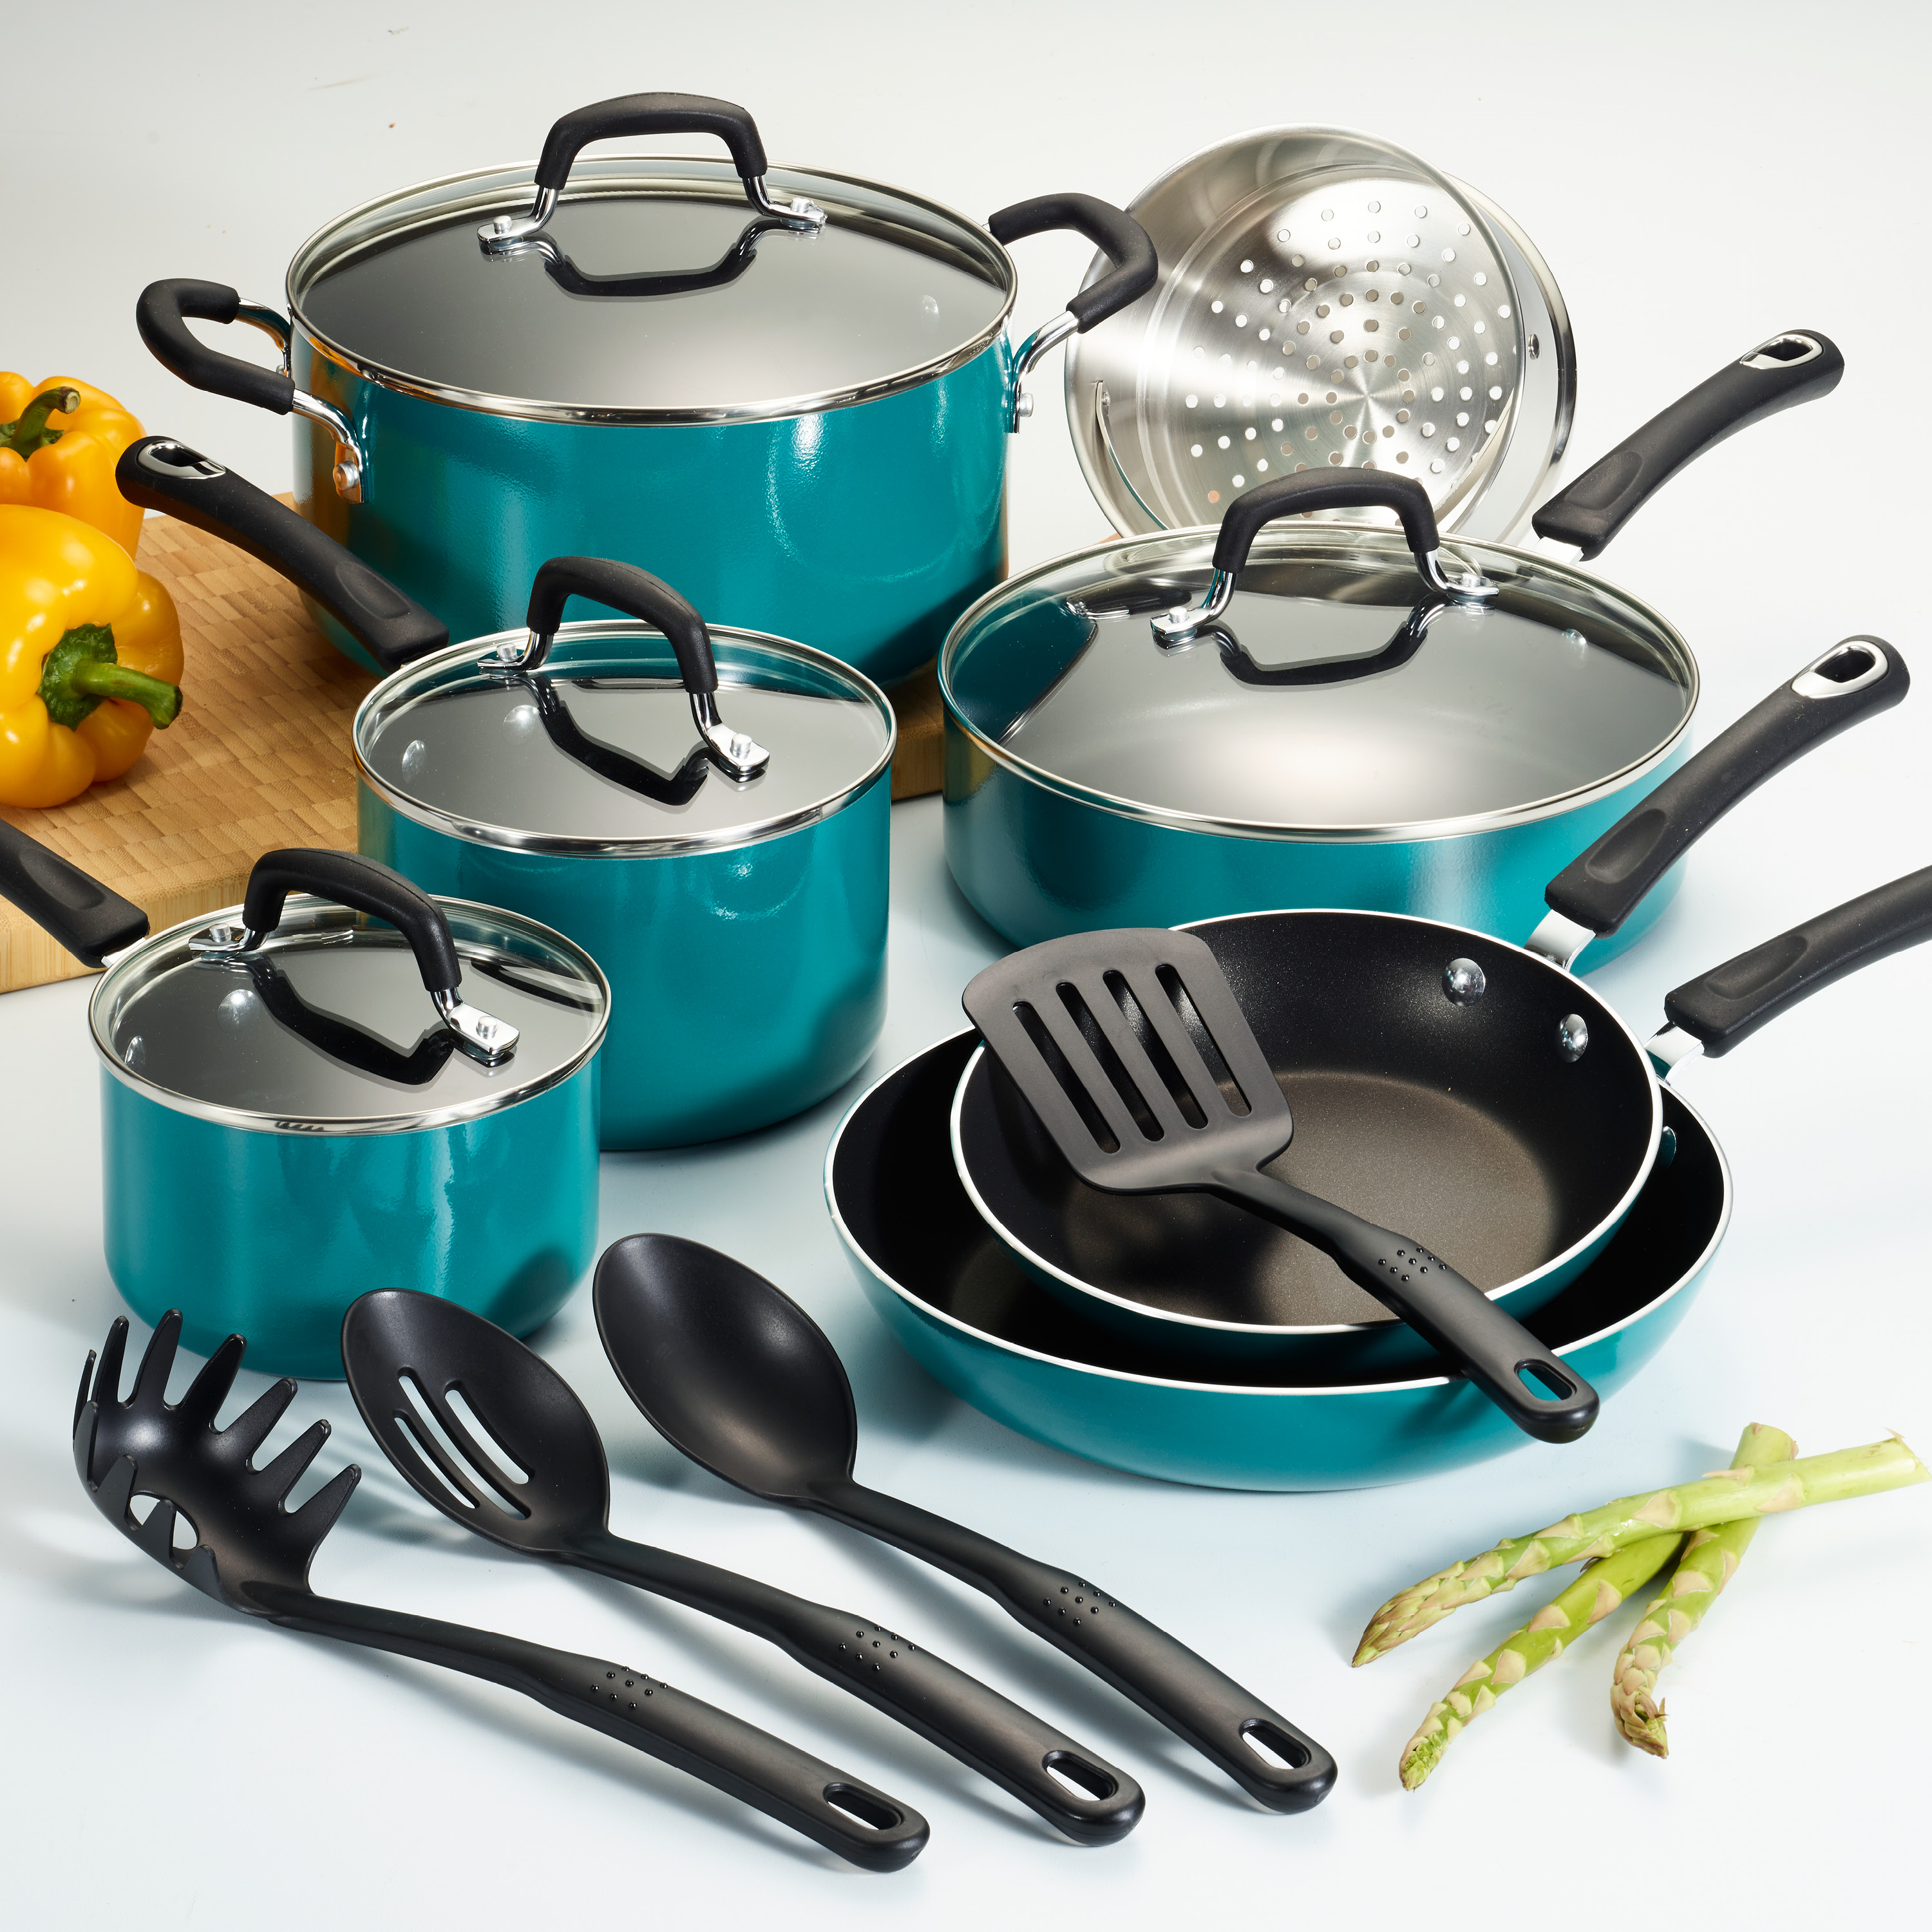 Tramontina 15 Pc Select Teal Nonstick Cookware Set